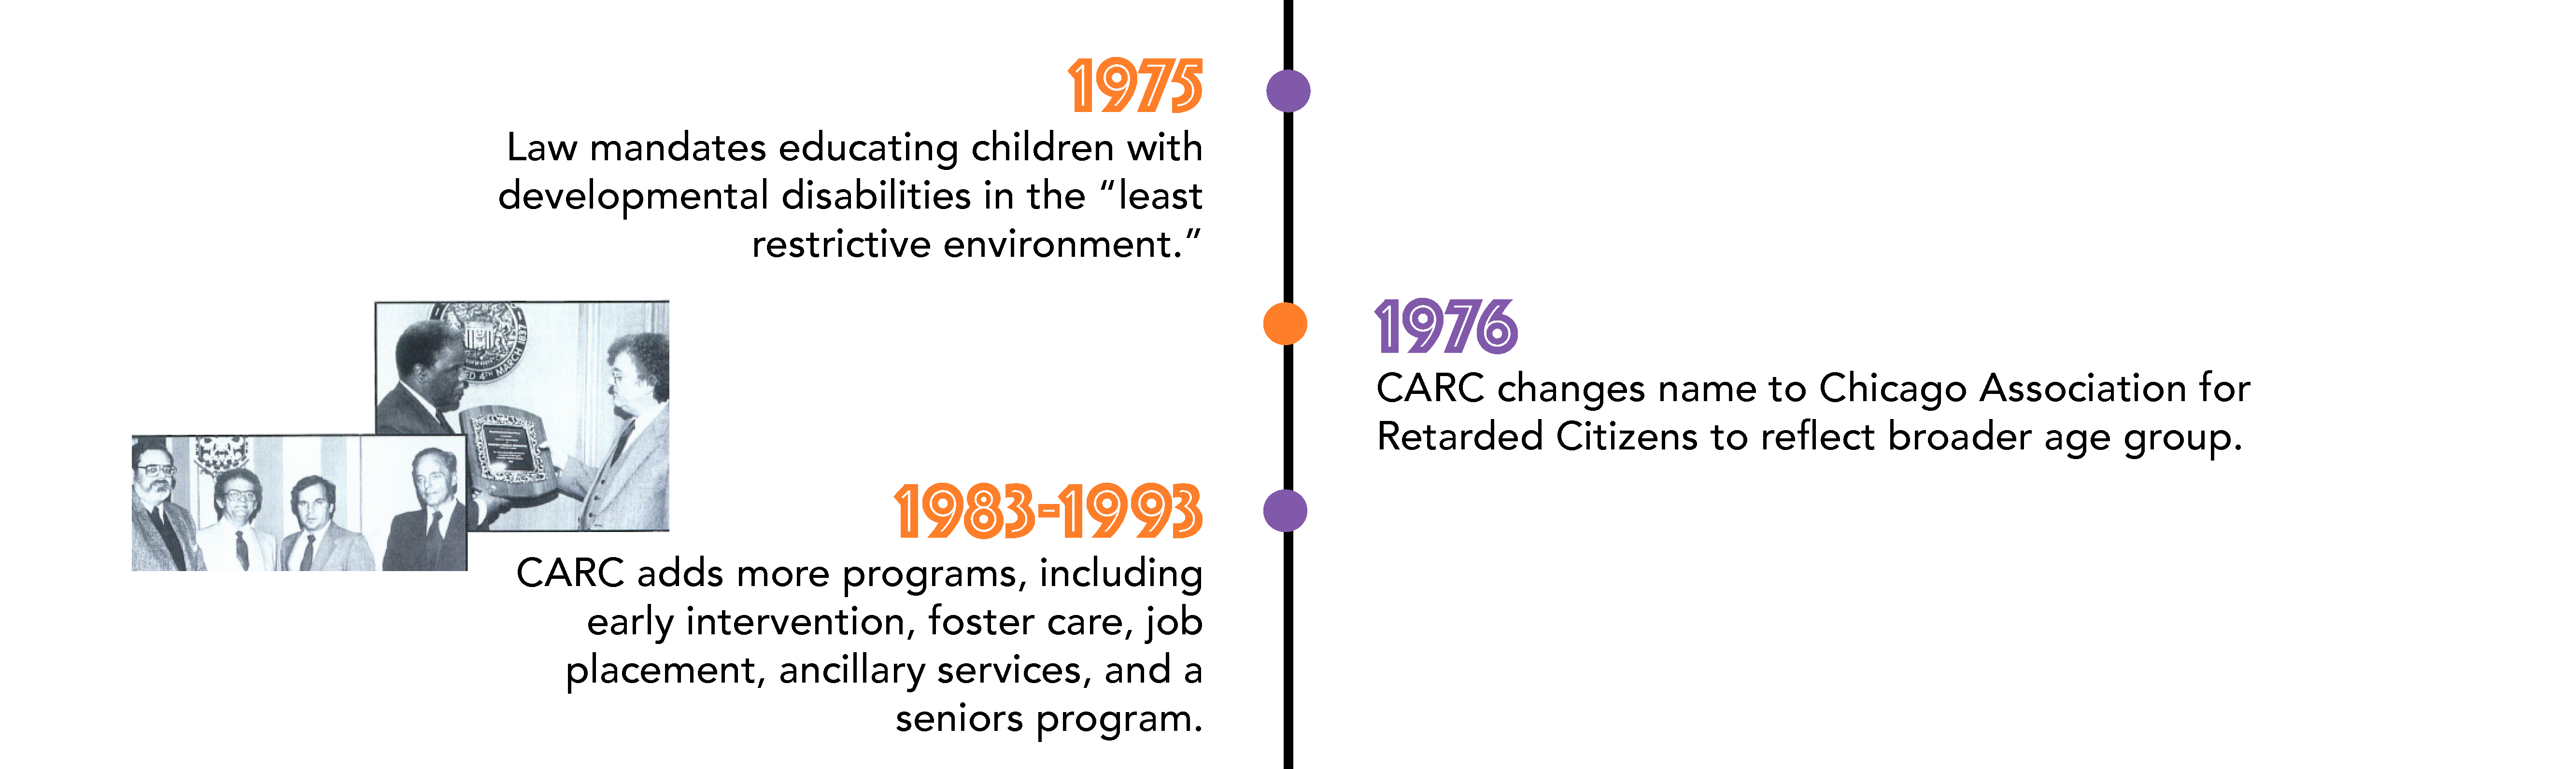 "In 1975, a law was passed that mandated educating children with developmental disabilities in the ""least restrictive environment."" In 1976, CARC changes name to Chicago Association for Retarded Citizens to reflect broader age group. And between 1983 and 1993, CARC adds more programs, including early intervention, foster care, job placement, ancillary services, and a seniors program."